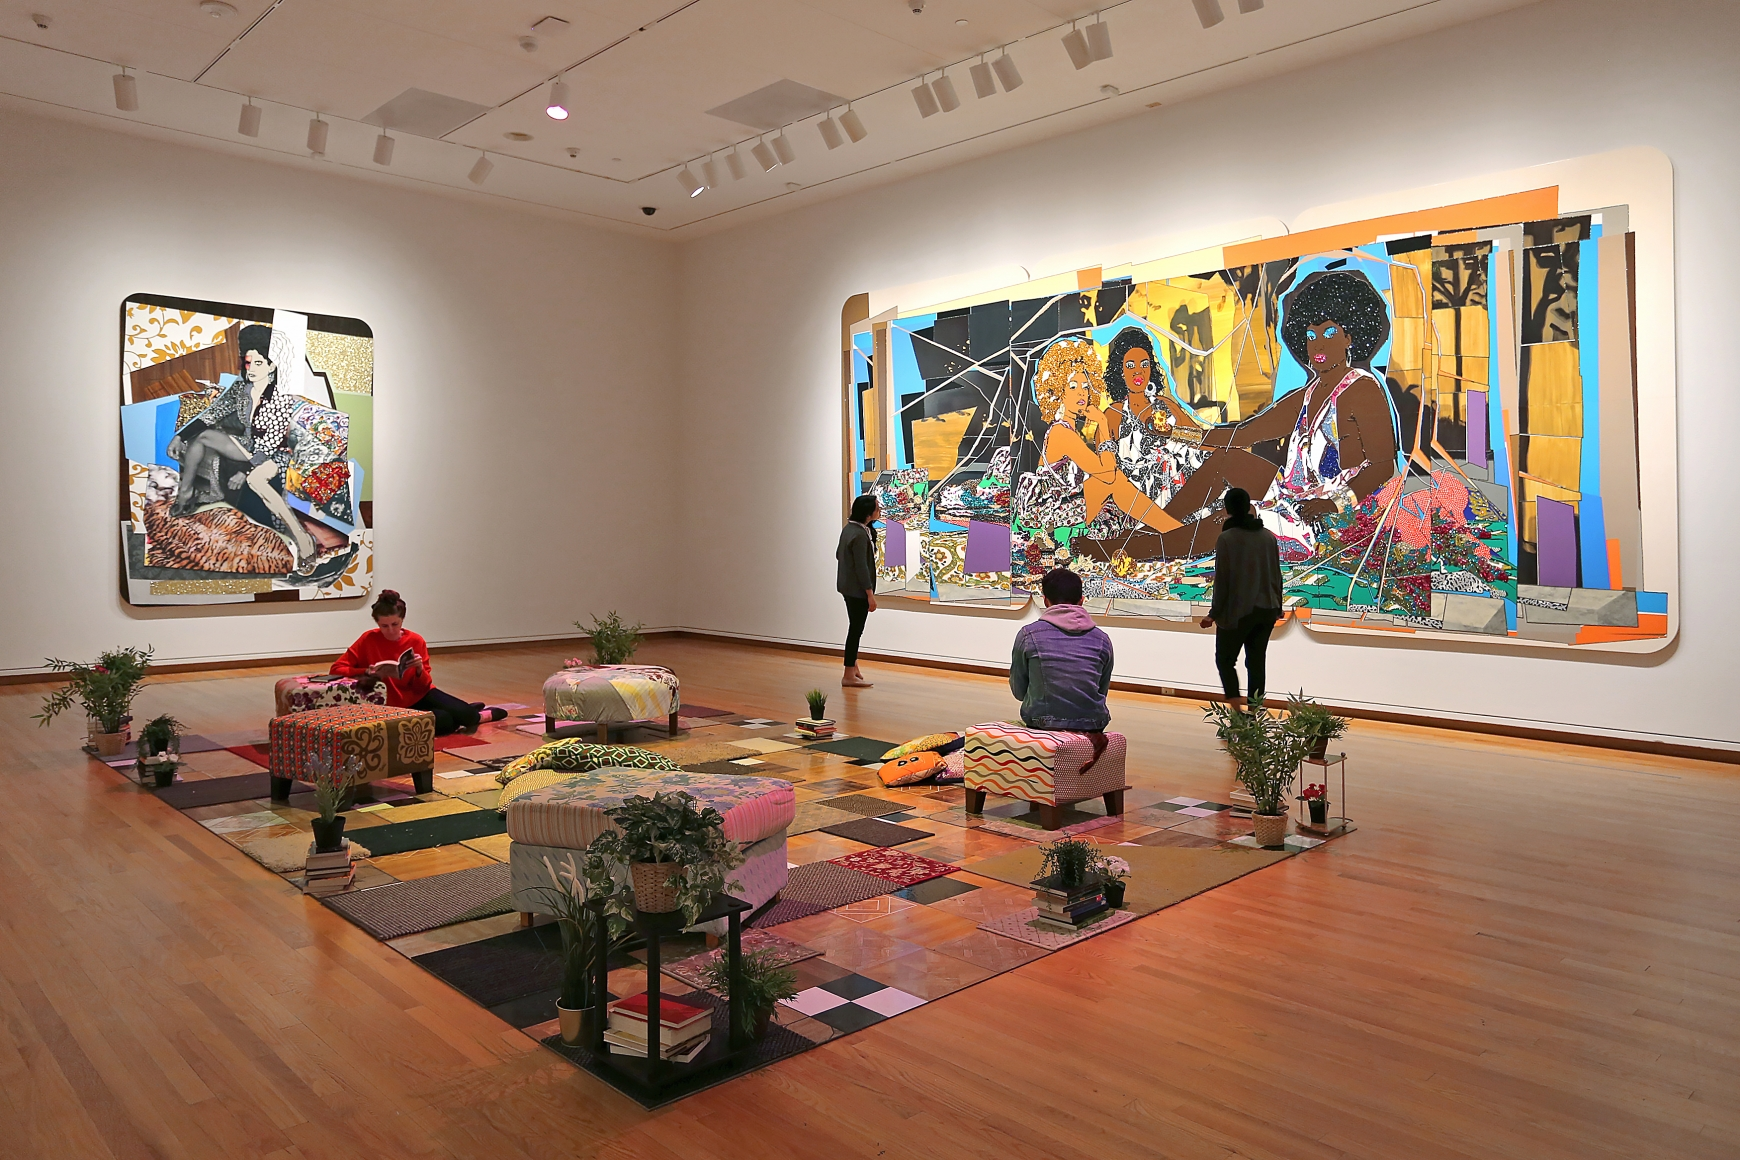 Figuring History: Robert Colescott, Kerry James Marshall, Mickalene Thomas, Installation view, Seattle Art Museum, Seattle, WA